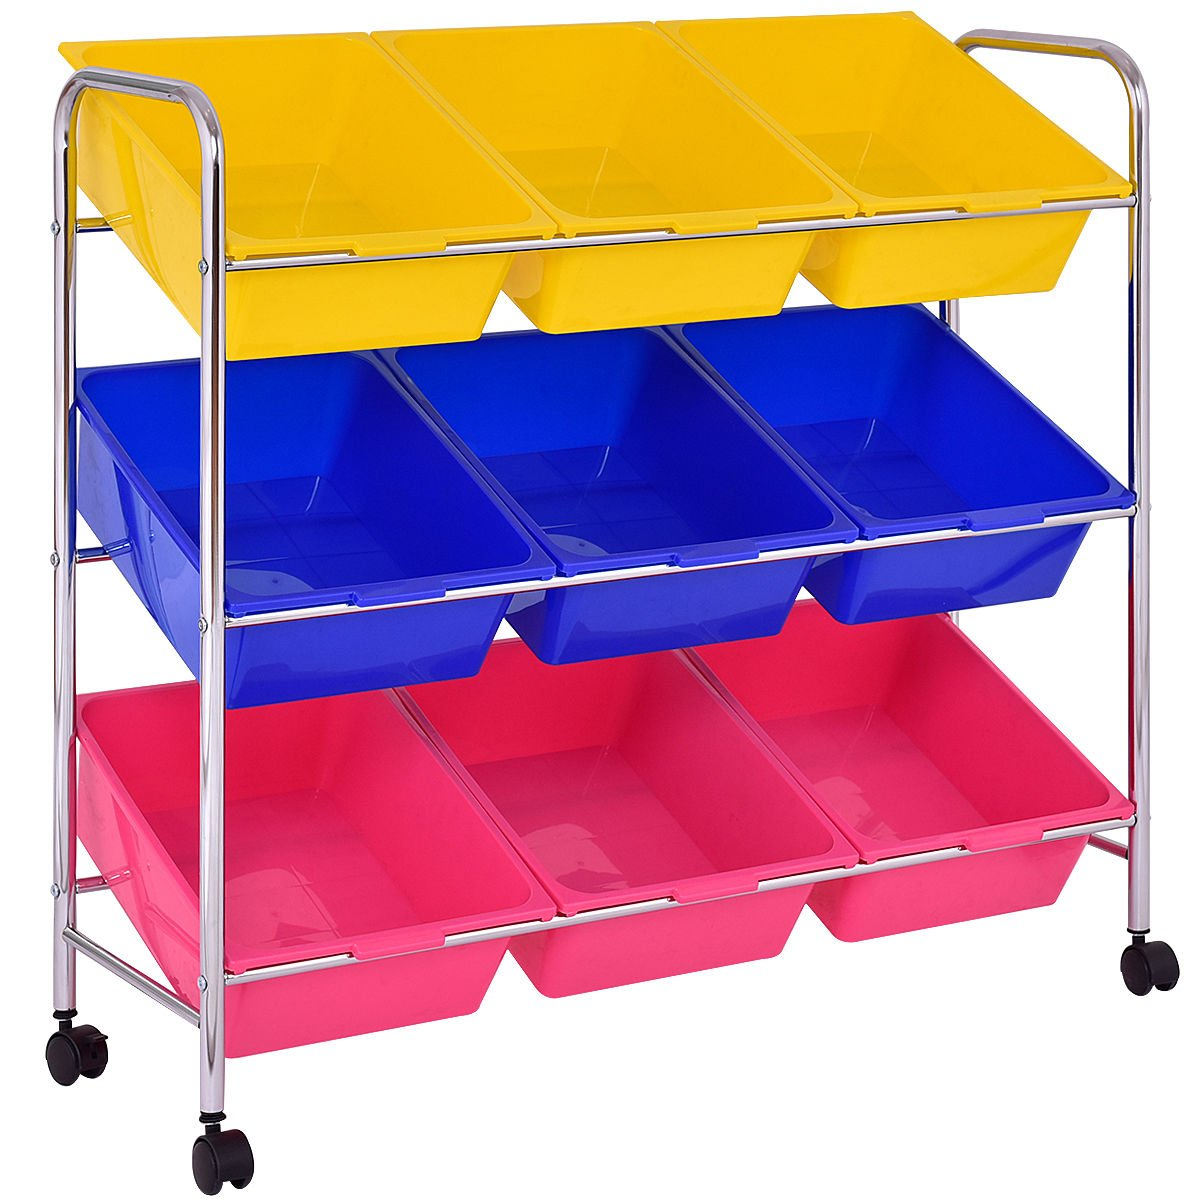 KCHEX>Toy Bin Cart Rack Organizer Kids Childrens Storage Box Playroom Bedroom Shelf>This is Our 9 Plastic Drawer Rolling cart, which is of and Brand New. Thanks to its Colorful Plastic